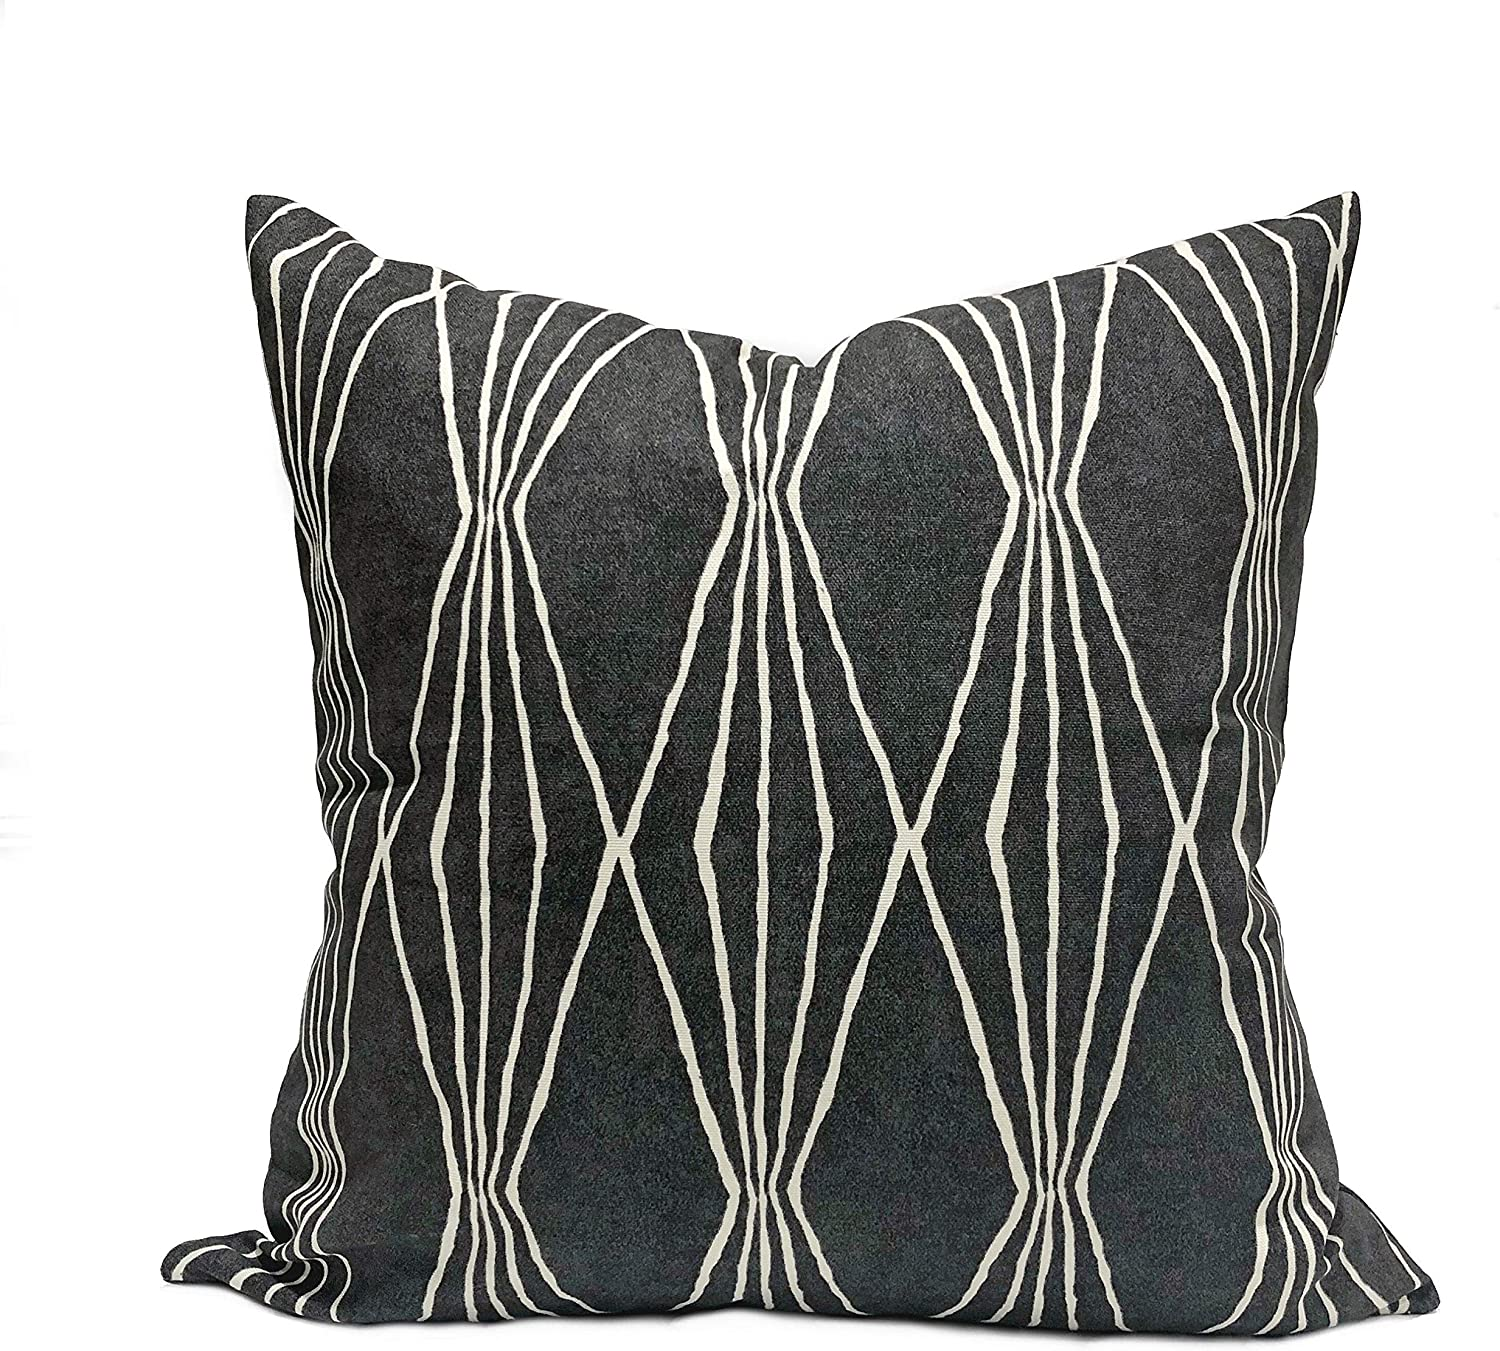 Flowershave357 Robert Allen Home Handcut Shapes Charcoal Fabric Throw Pillow Cover Ivory and Charcoal Geometric Print Pillowcase